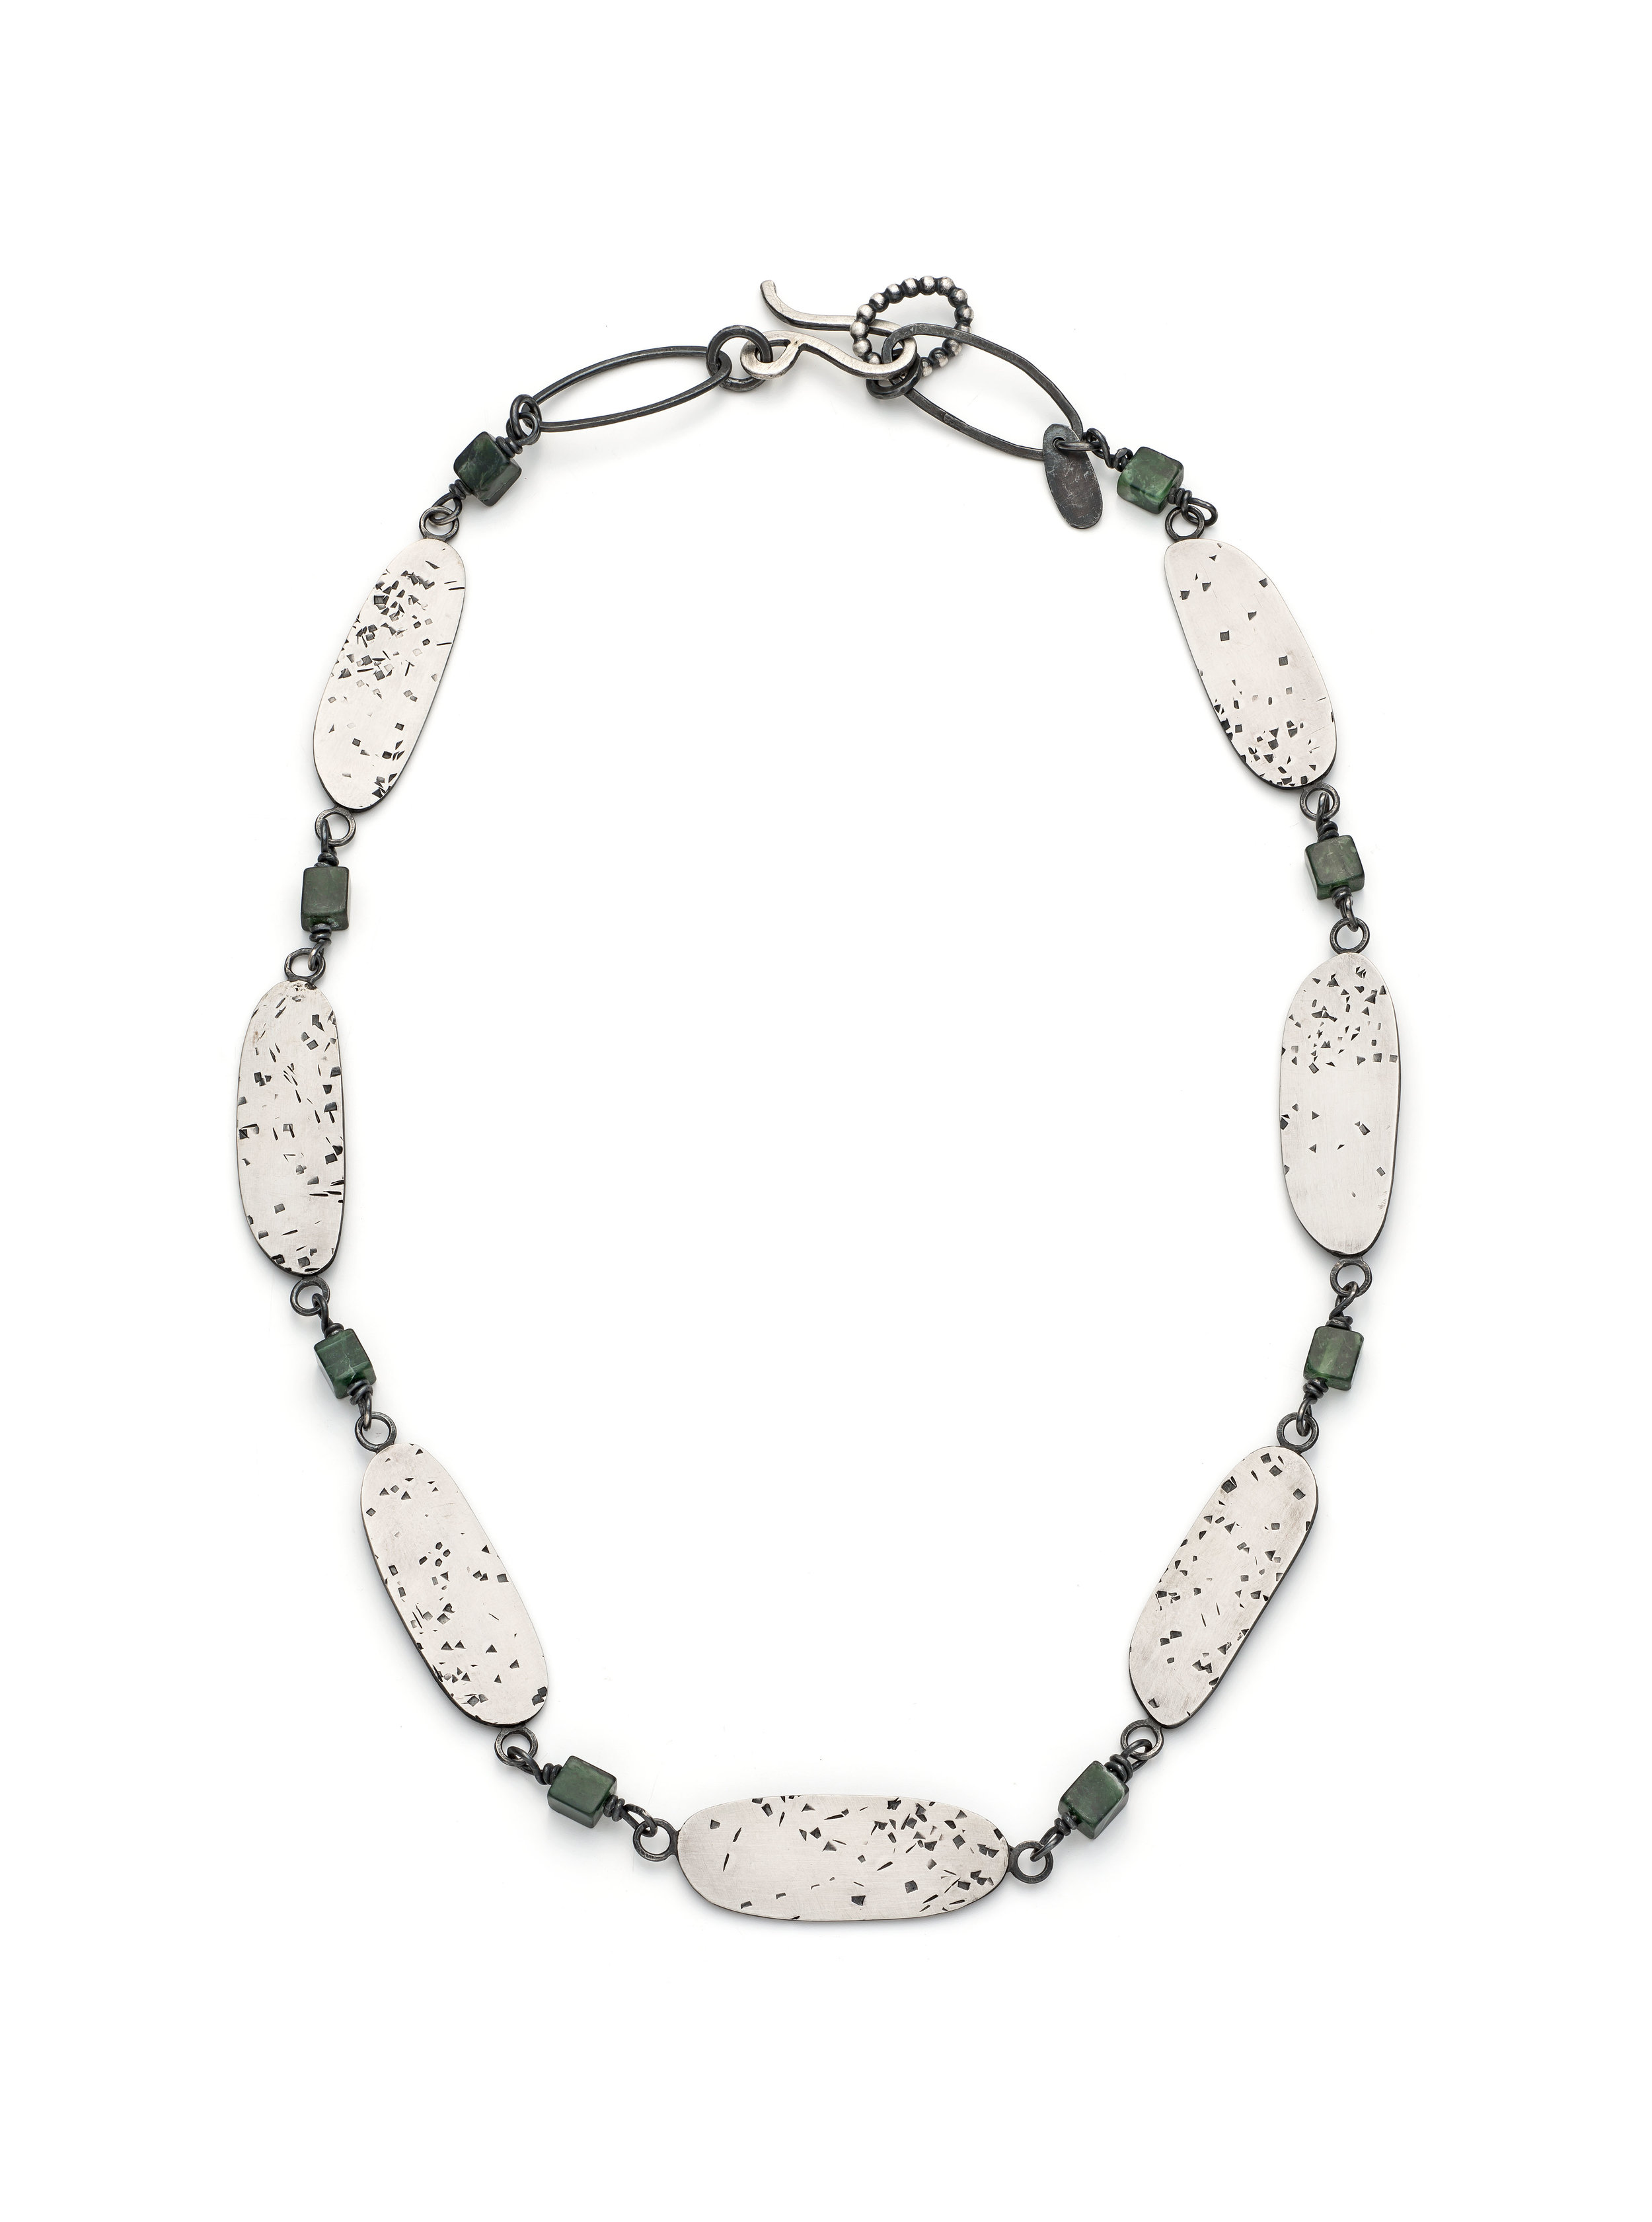 Large sterling silver statement necklace with royal green semi precious beads with seven large freckled textured ovals. £340